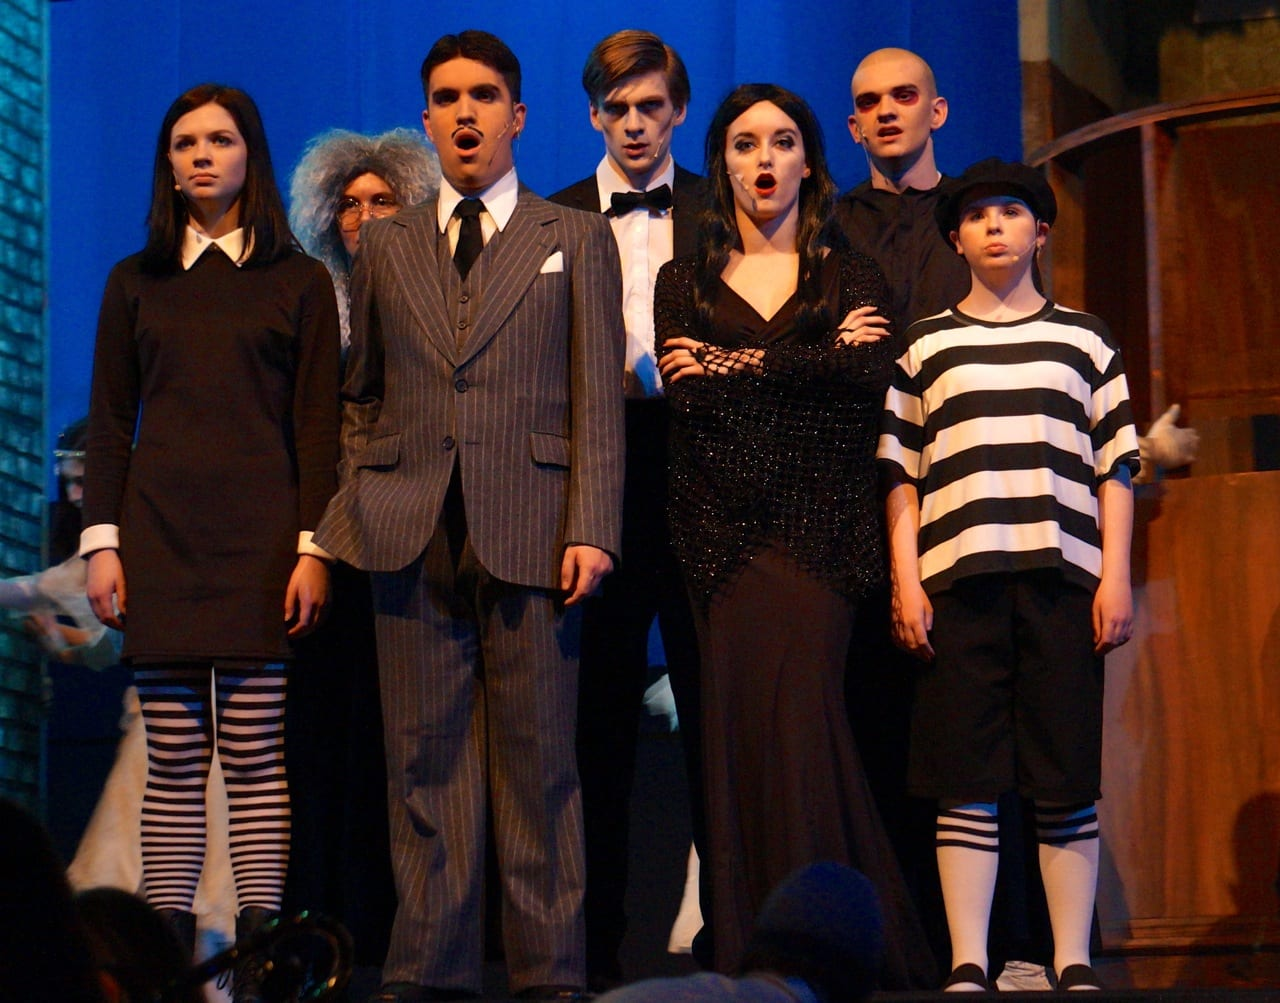 Conard S Production Of The Addams Family Is Weird And